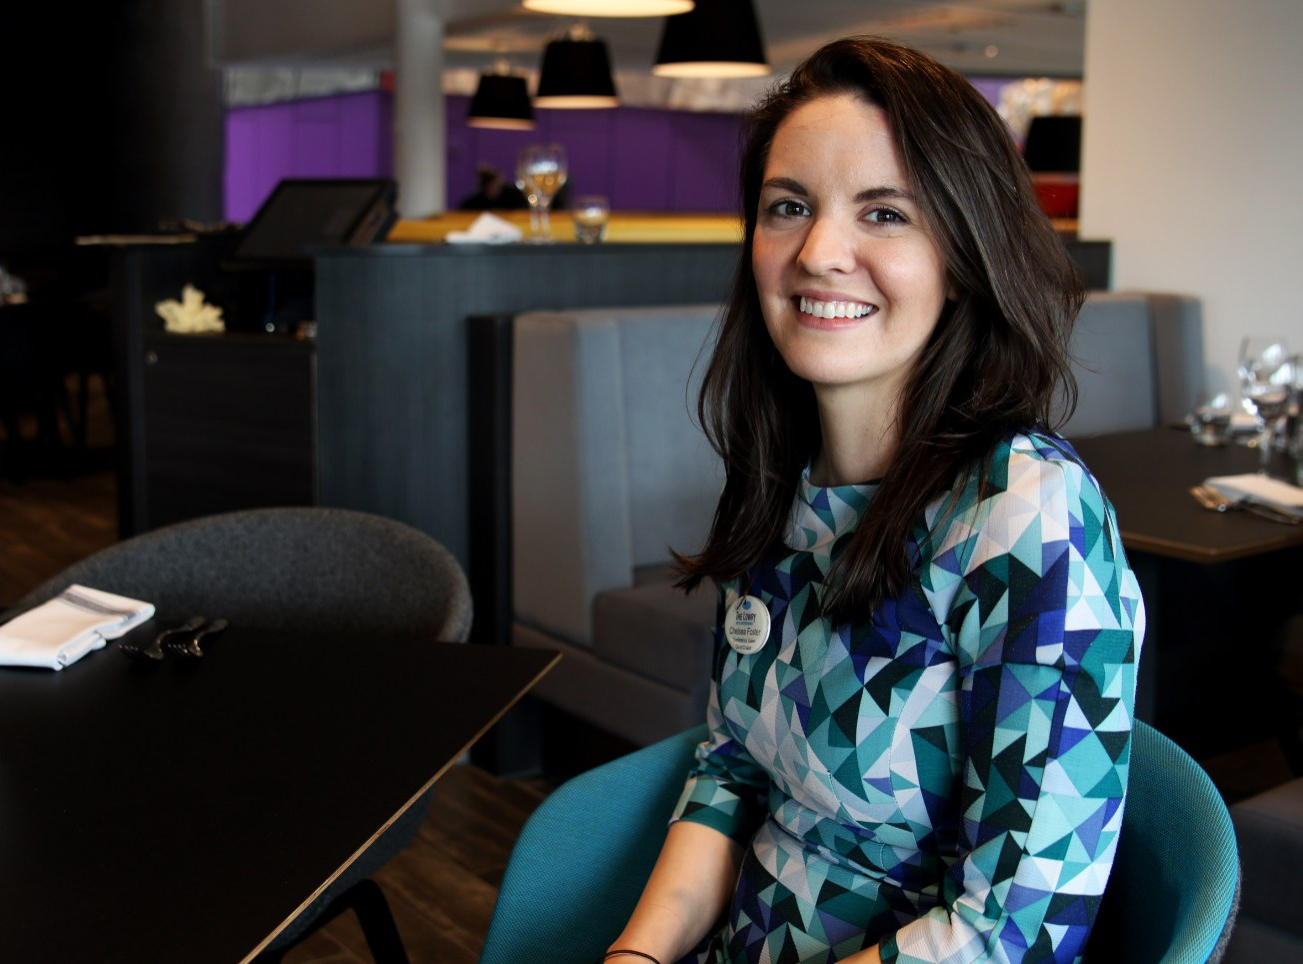 Backstage at The Lowry: Chelsea Foster, Conference & Events Coordinator